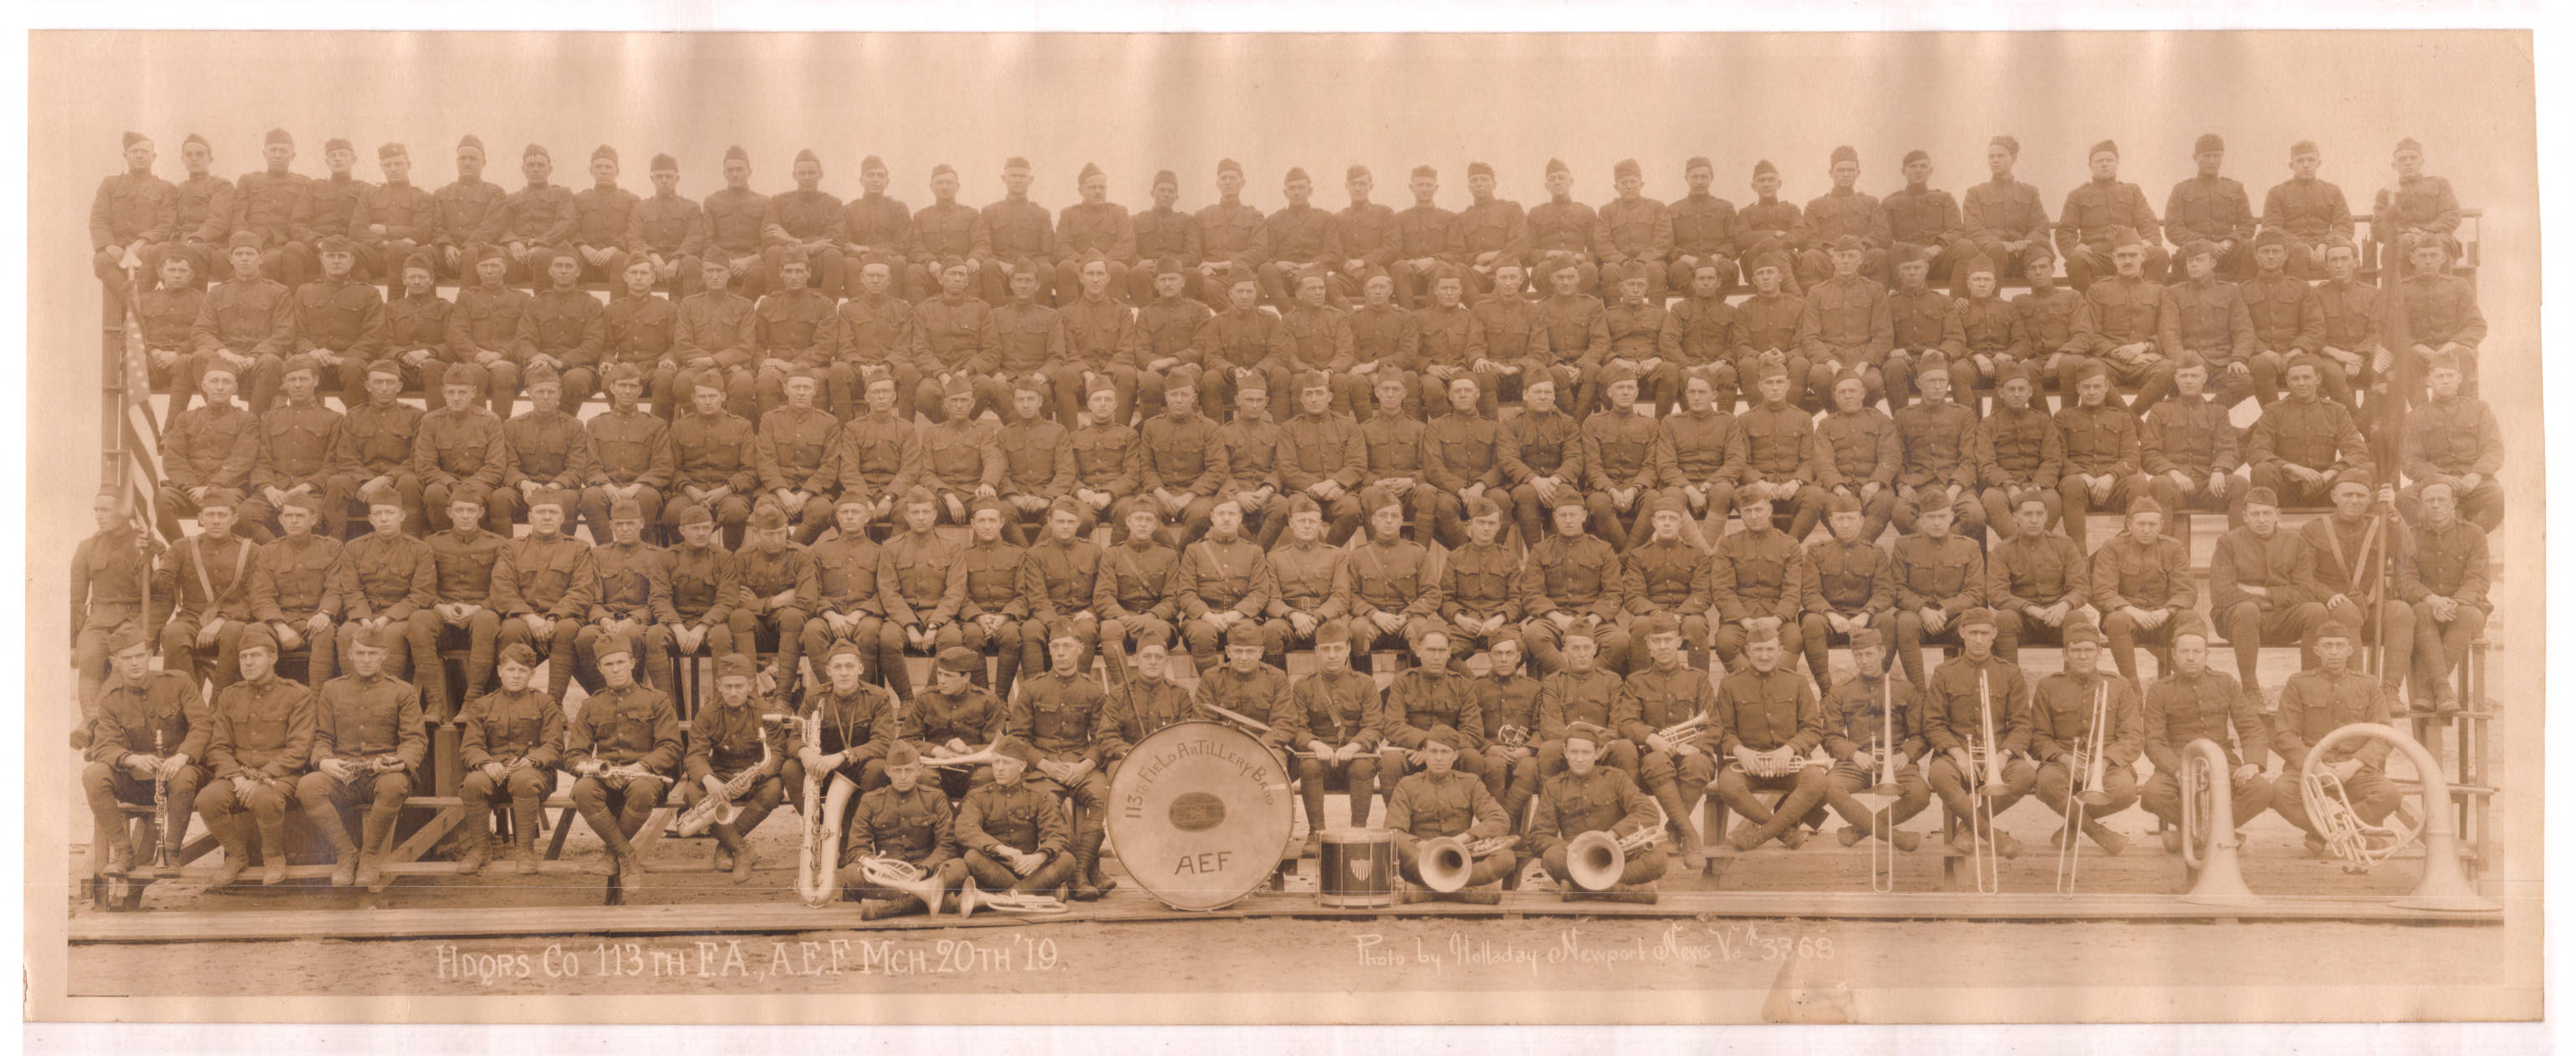 5b915d8a0854c 113th Field Artillery Band